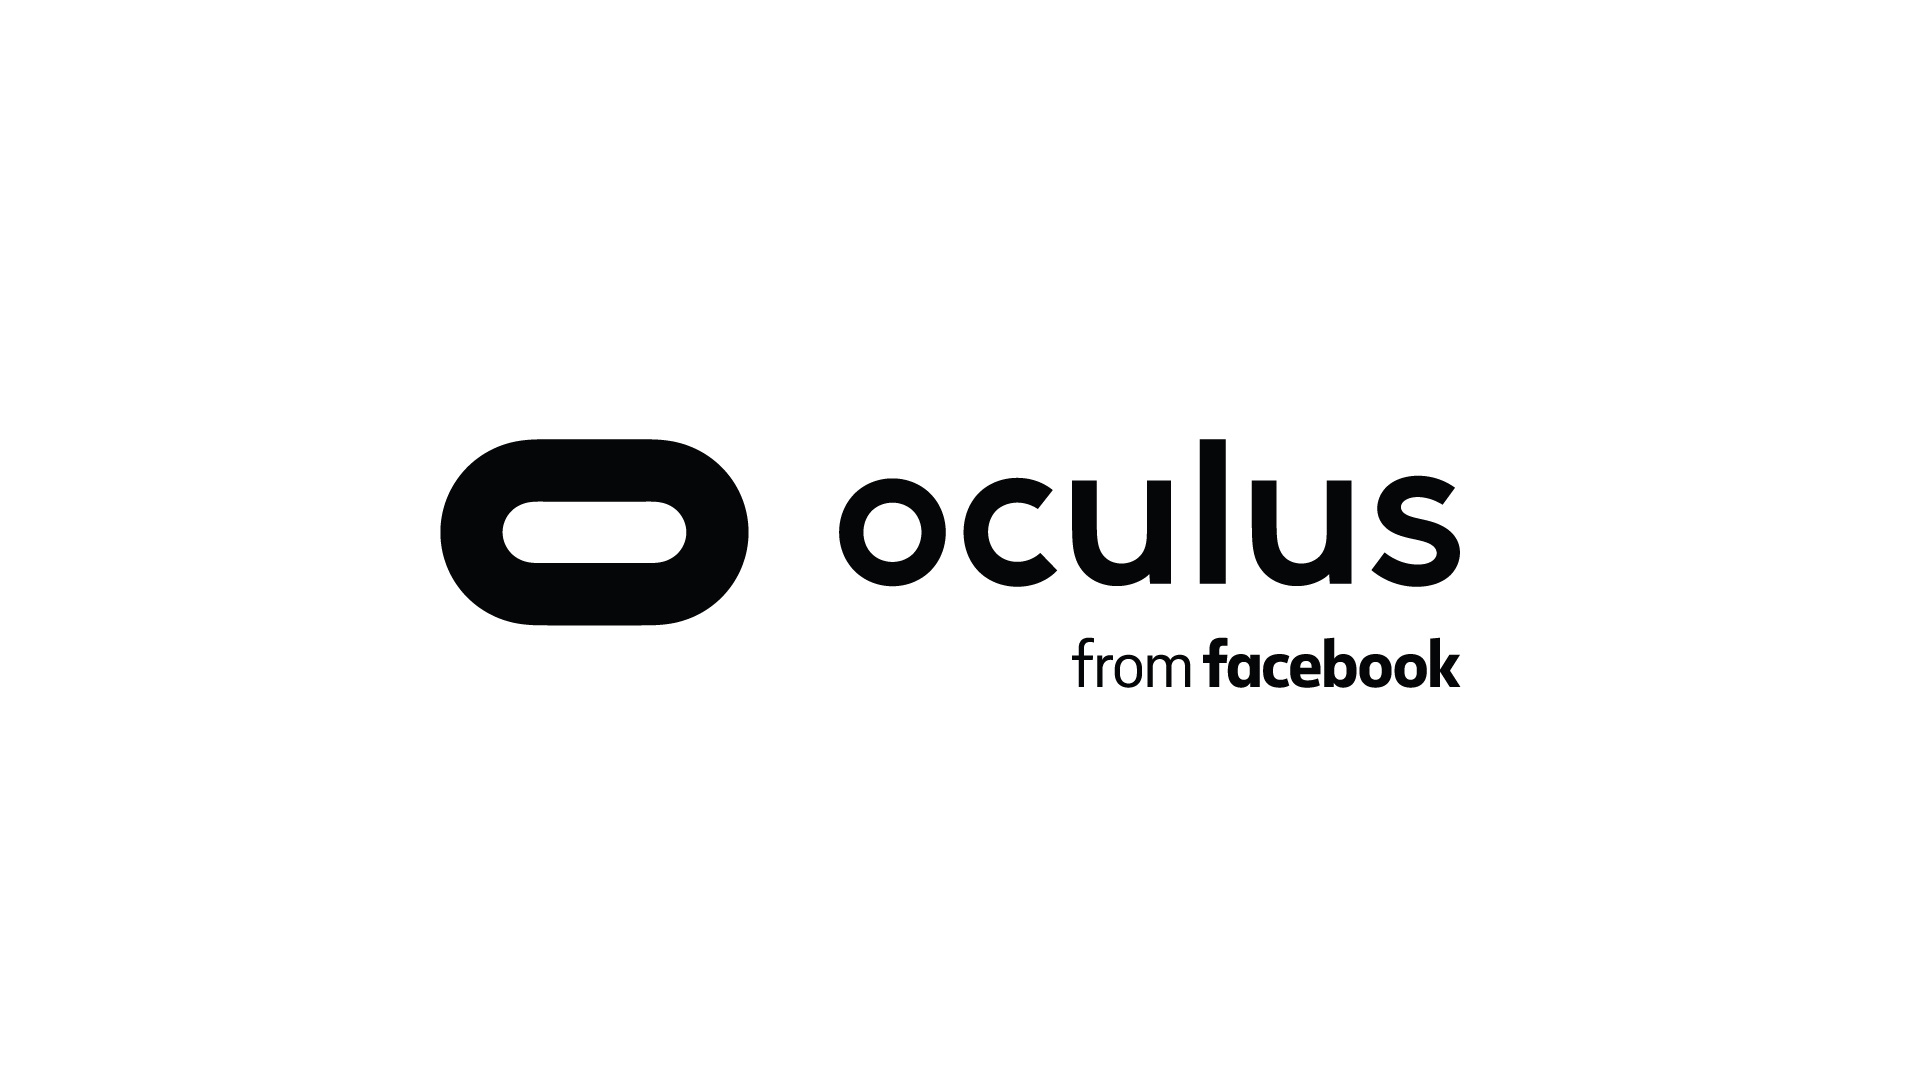 Oculus products will eventually require a Facebook account